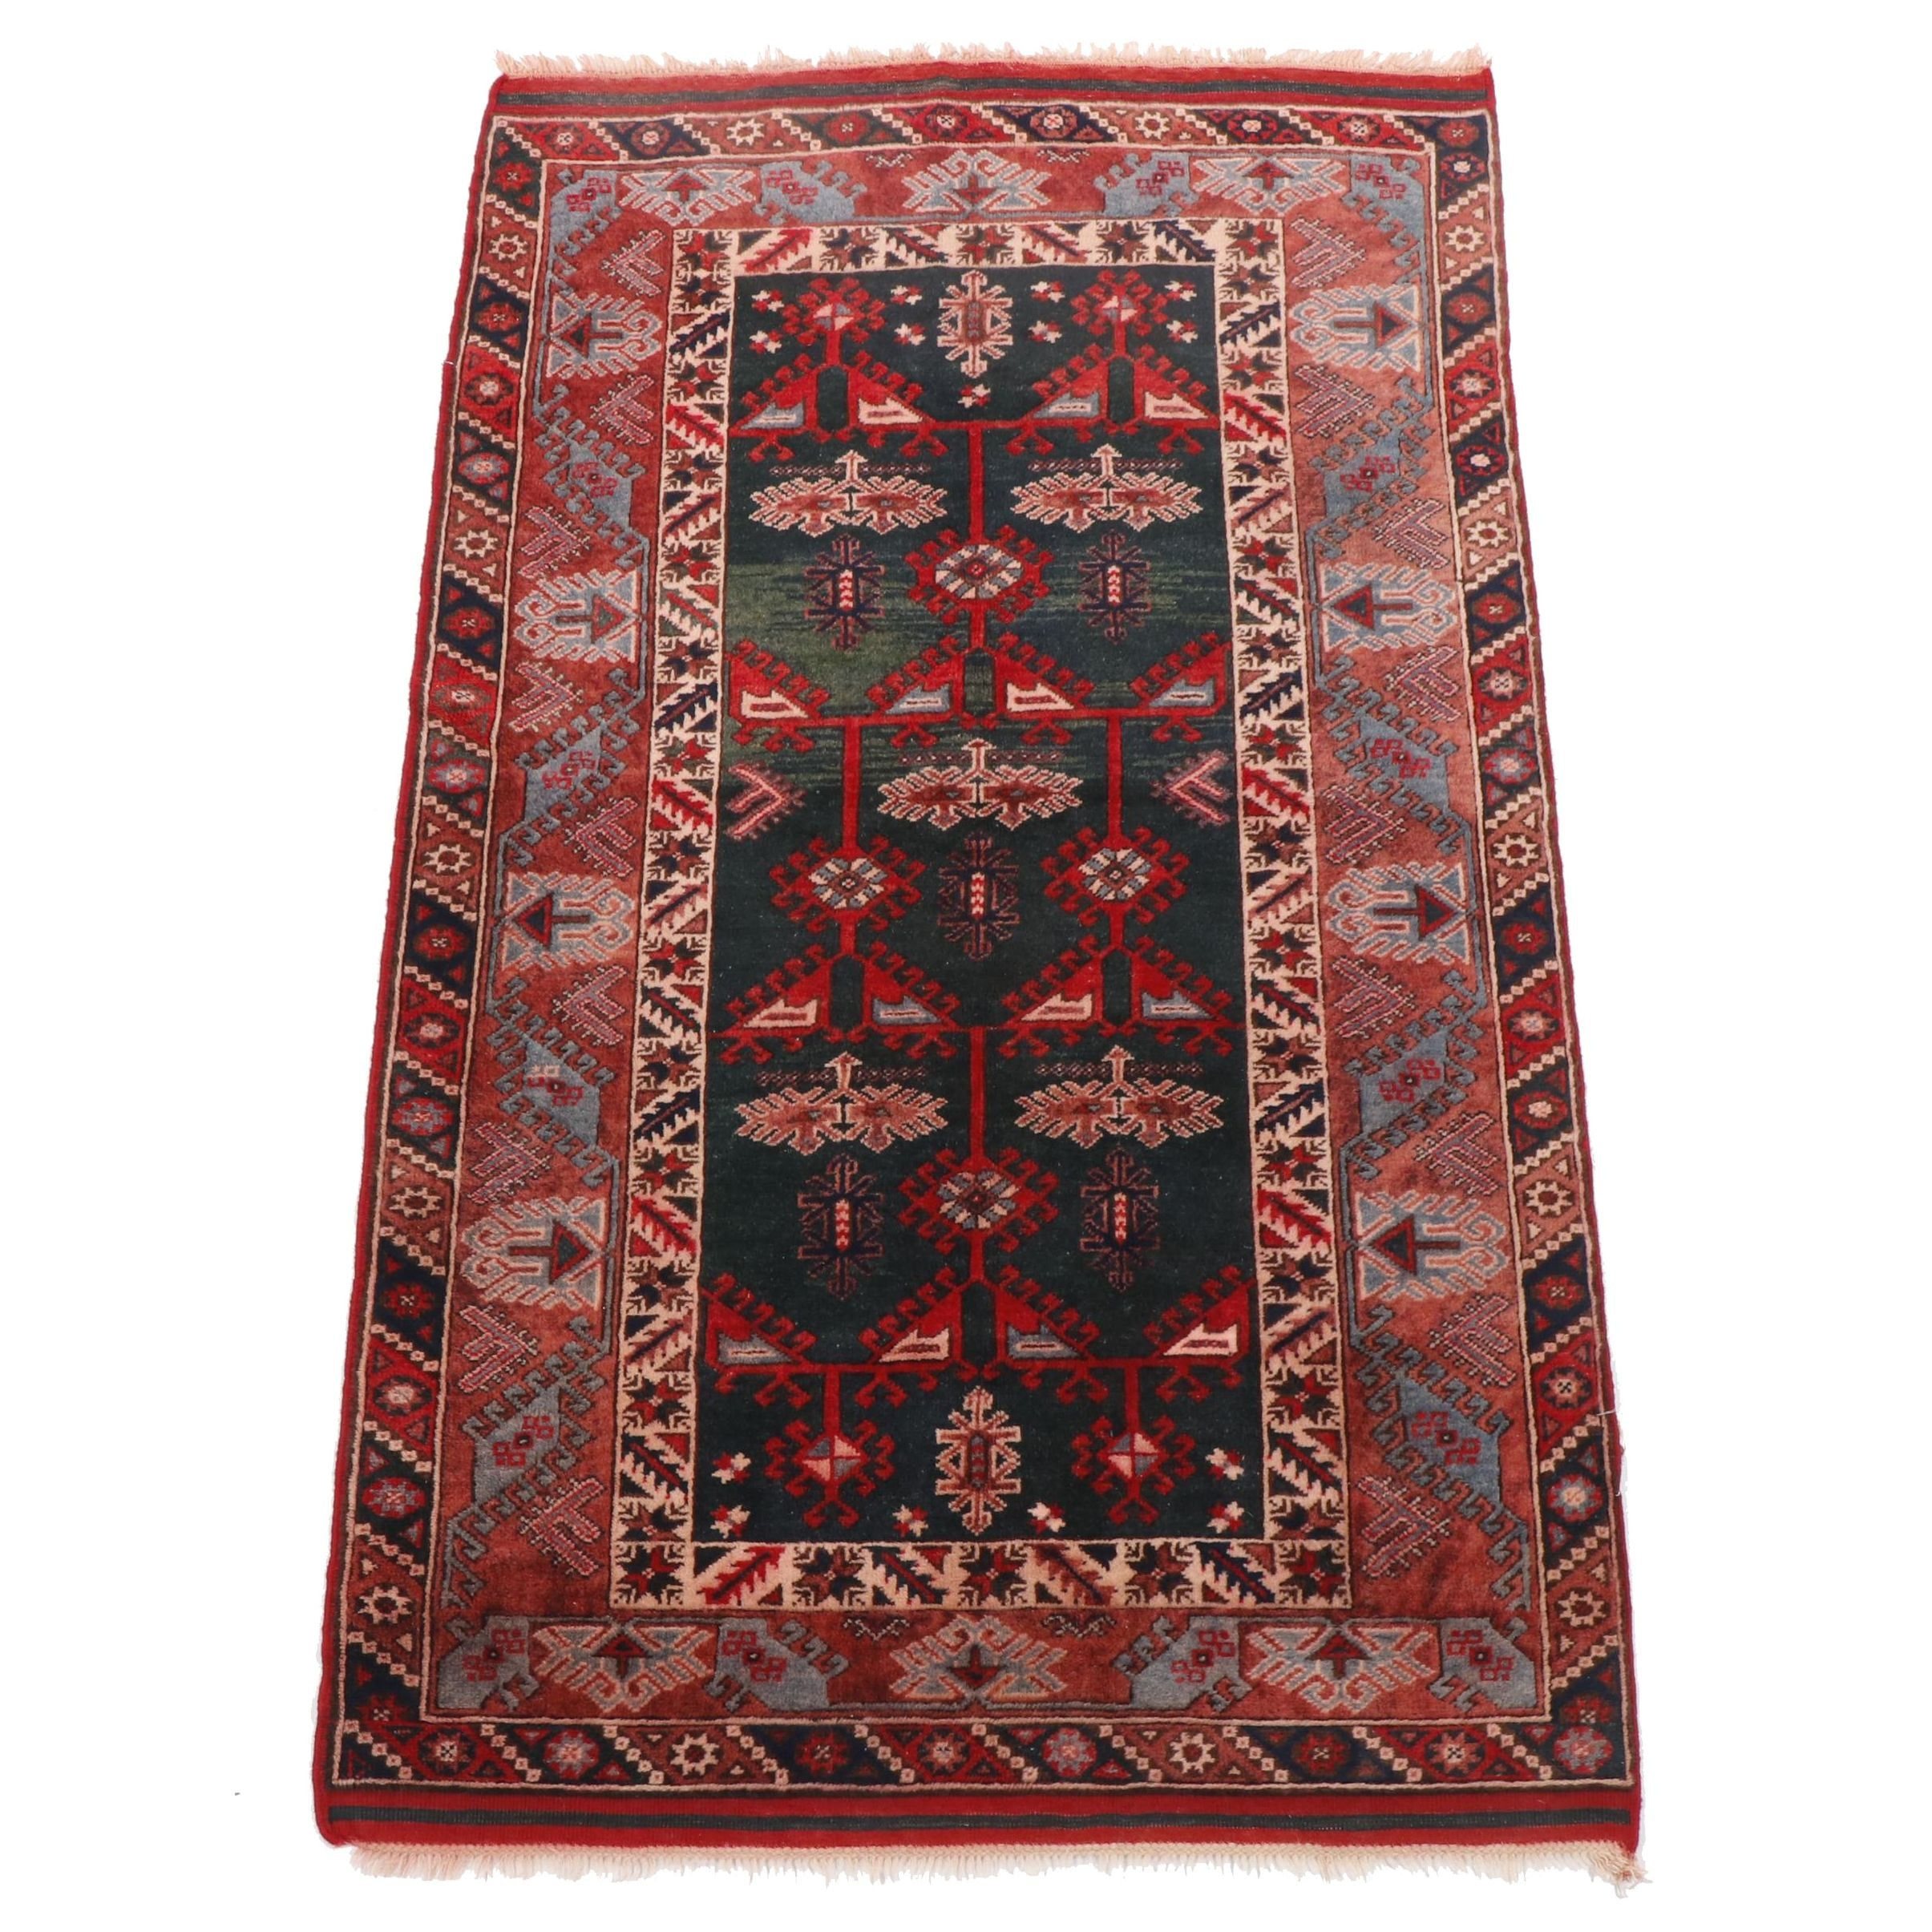 Hand-Knotted Turkish Konya Wool Rug from Oscar Isberian